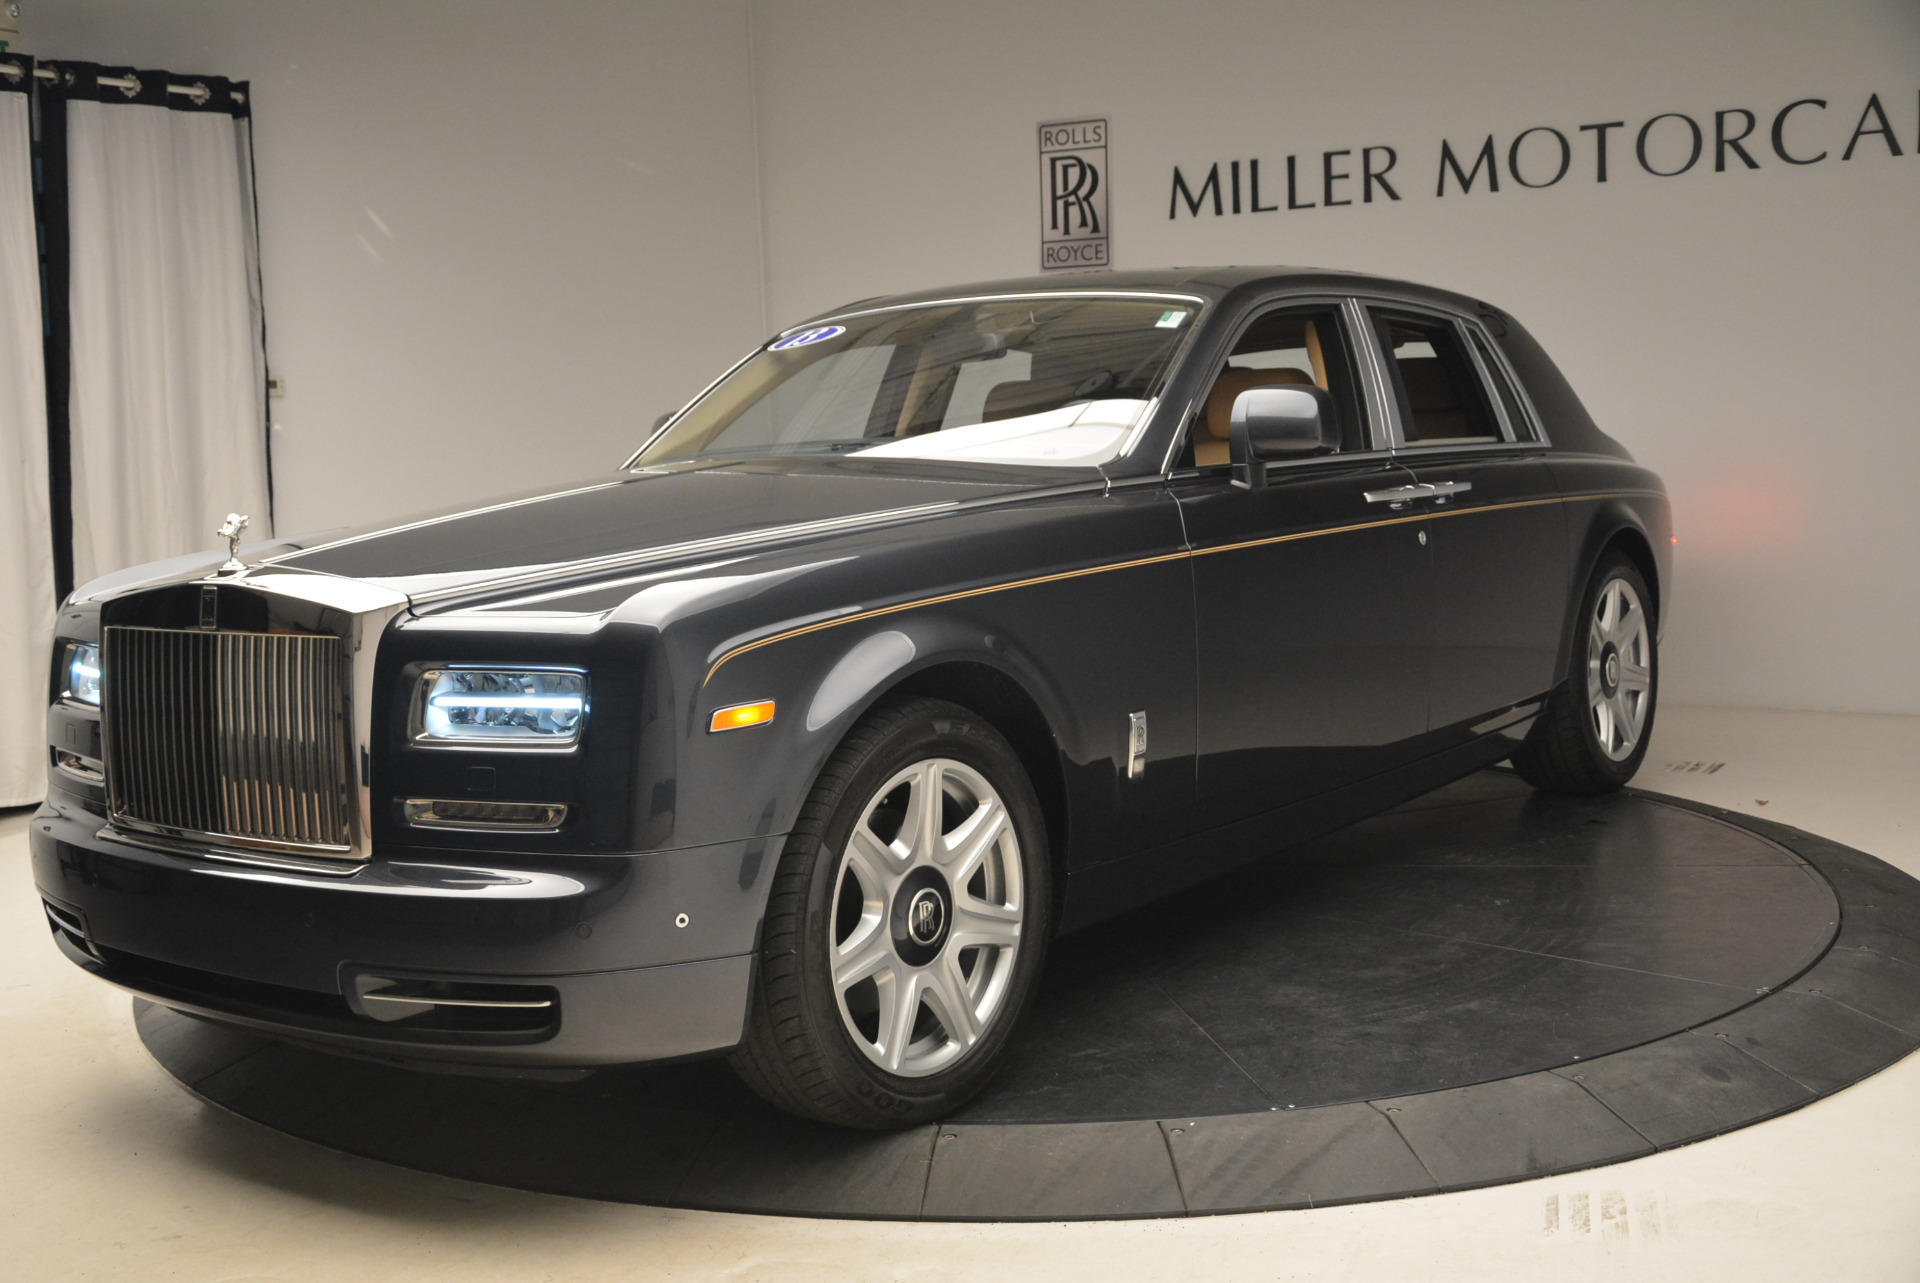 Used 2013 Rolls-Royce Phantom for sale Sold at McLaren Greenwich in Greenwich CT 06830 1